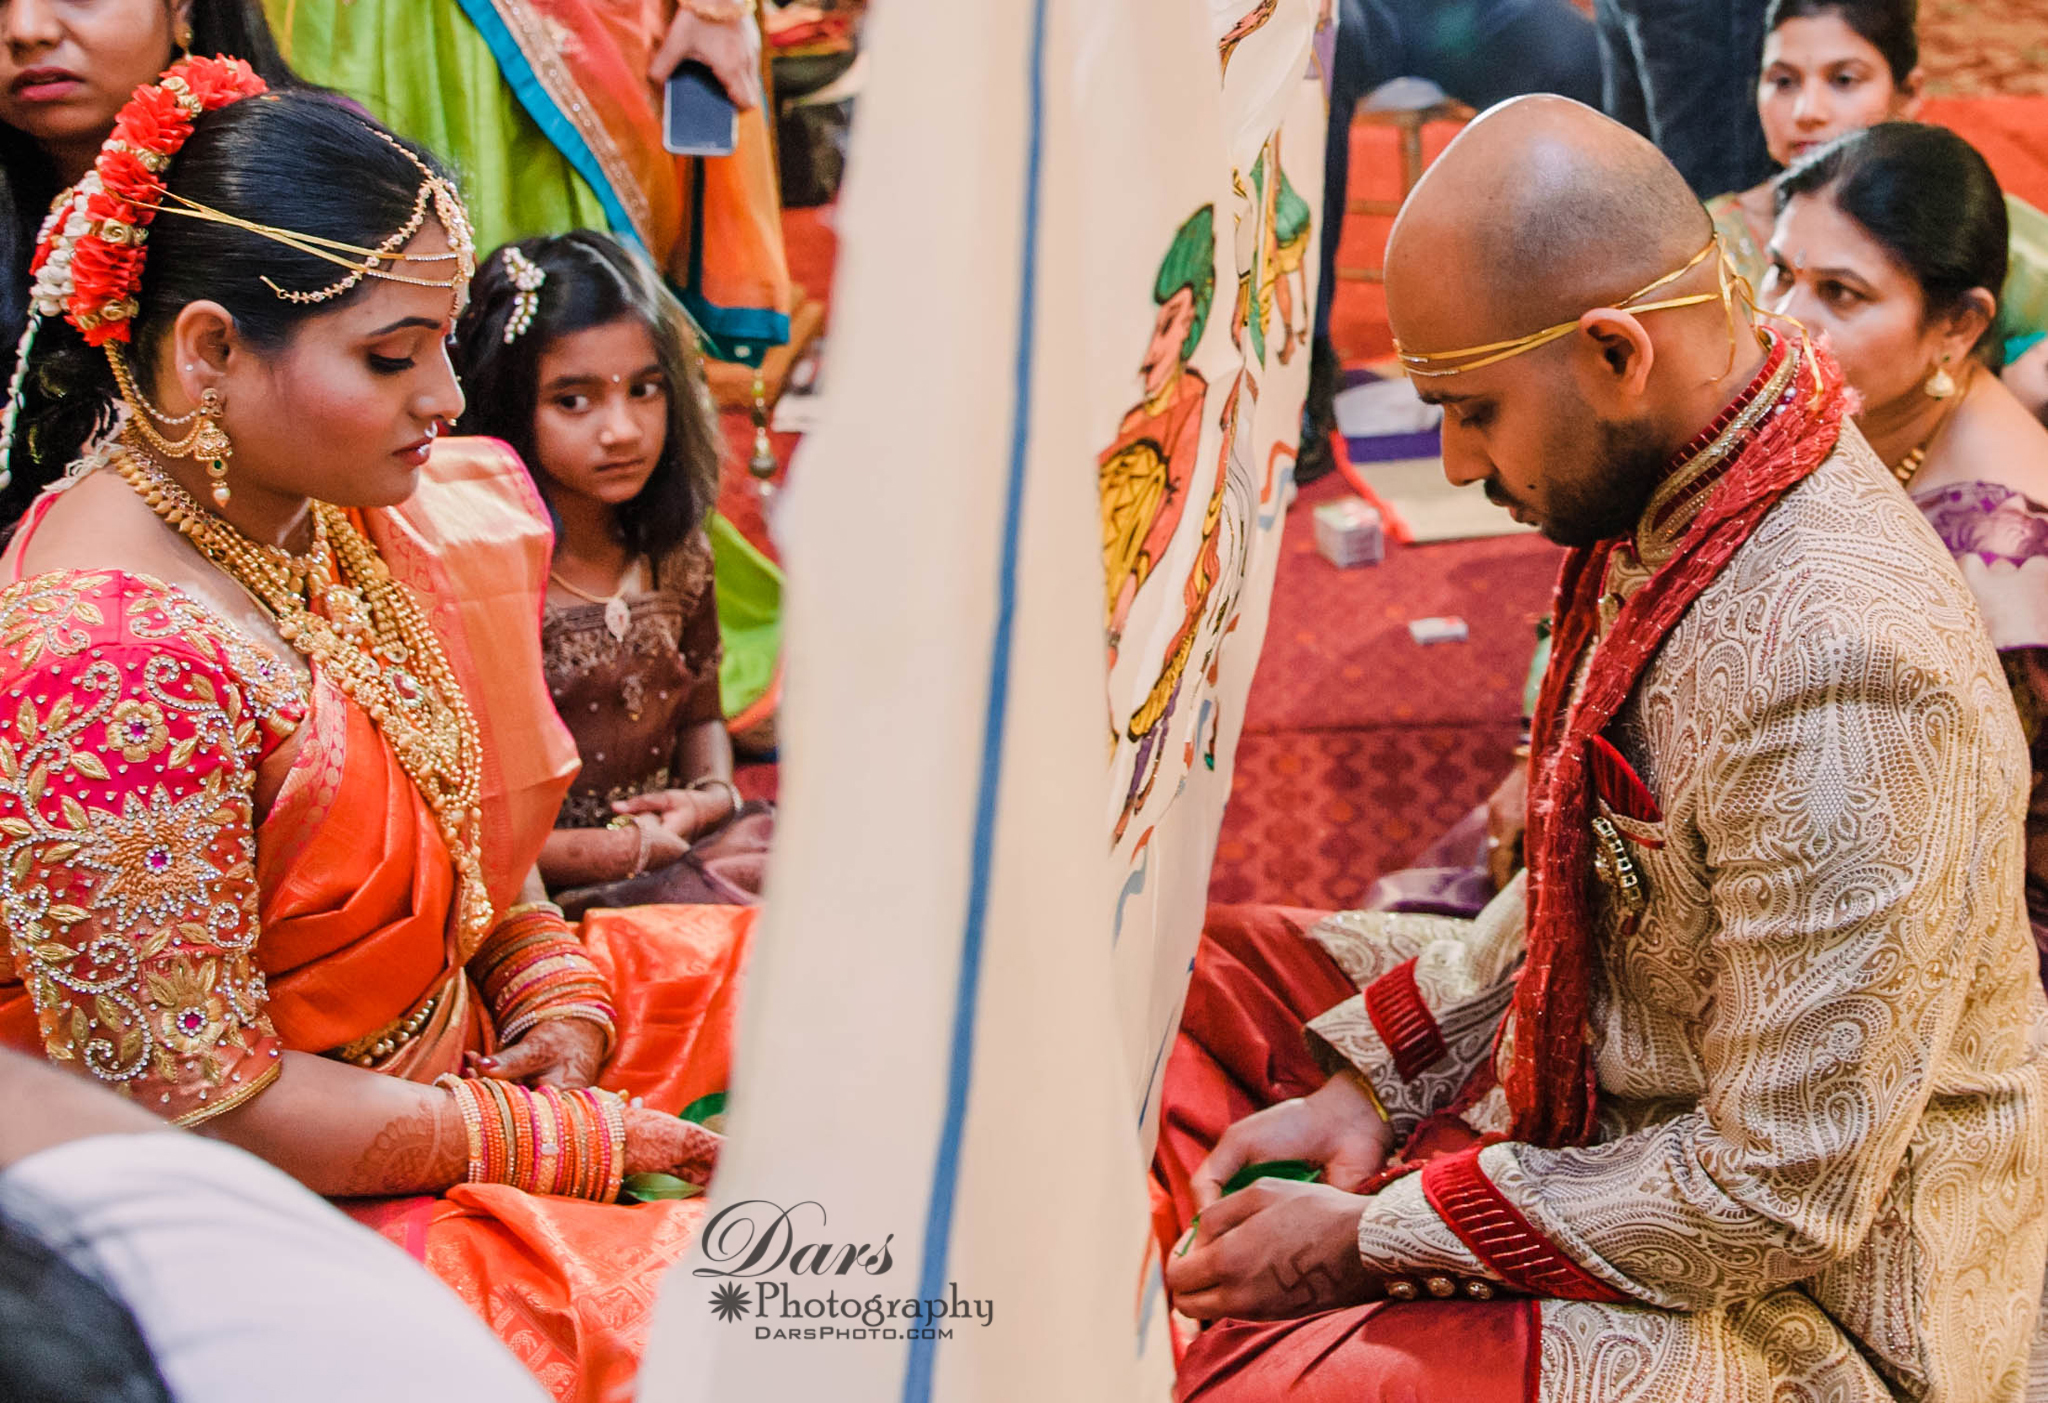 Chicago American And Indian Wedding Photographer DARS Photography 32